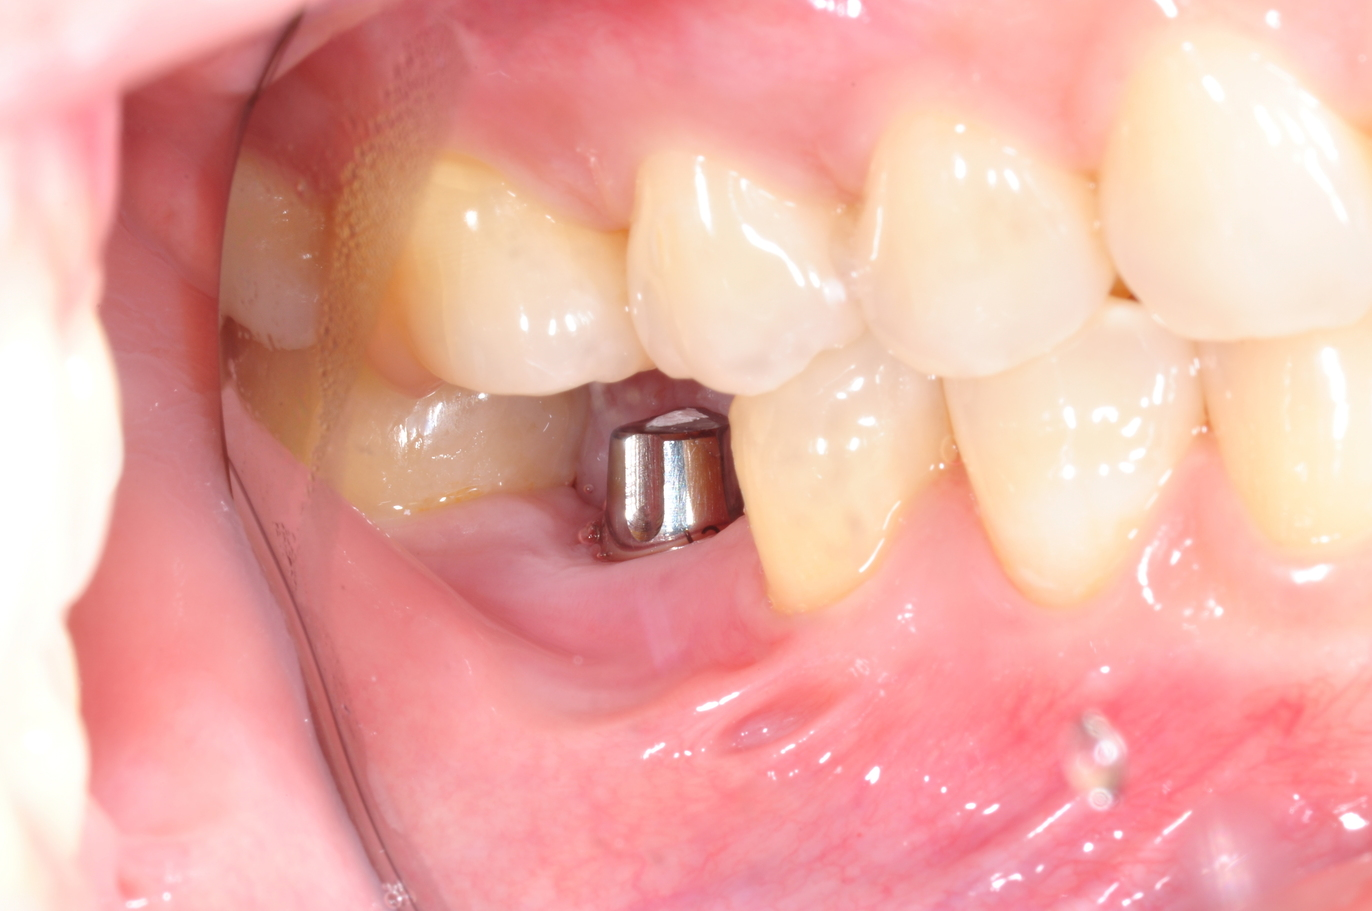 Dental Implant firmly intact